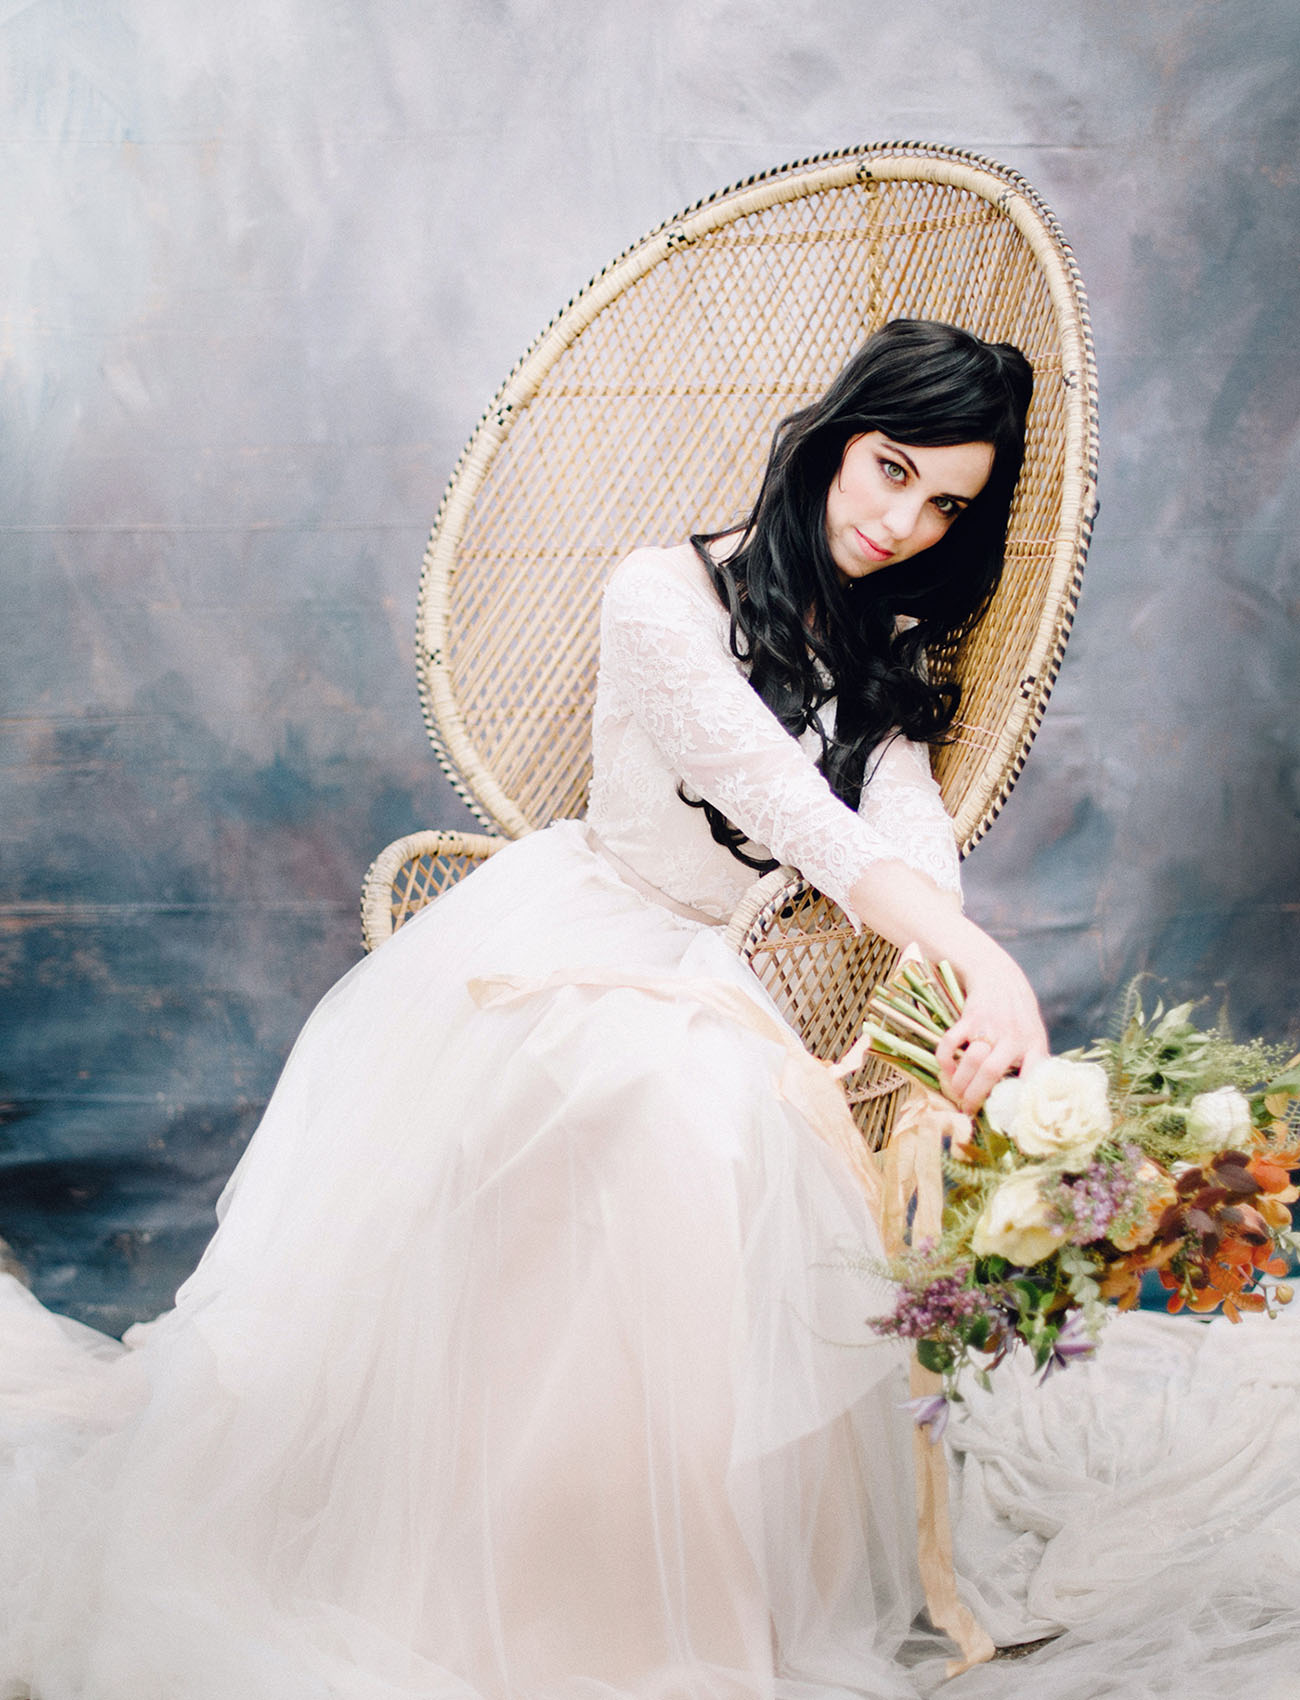 Featured on Green Wedding Shoes: Romance of Dance Editorial by Deidre Lynn Photography, Splendor of Eden, Something Old Event Rentals,  SIBO Designs, Divine Atelier,  Kelsey Malie, Sinclair Dance Studio, B. Loved Stylists and The FIND Lab